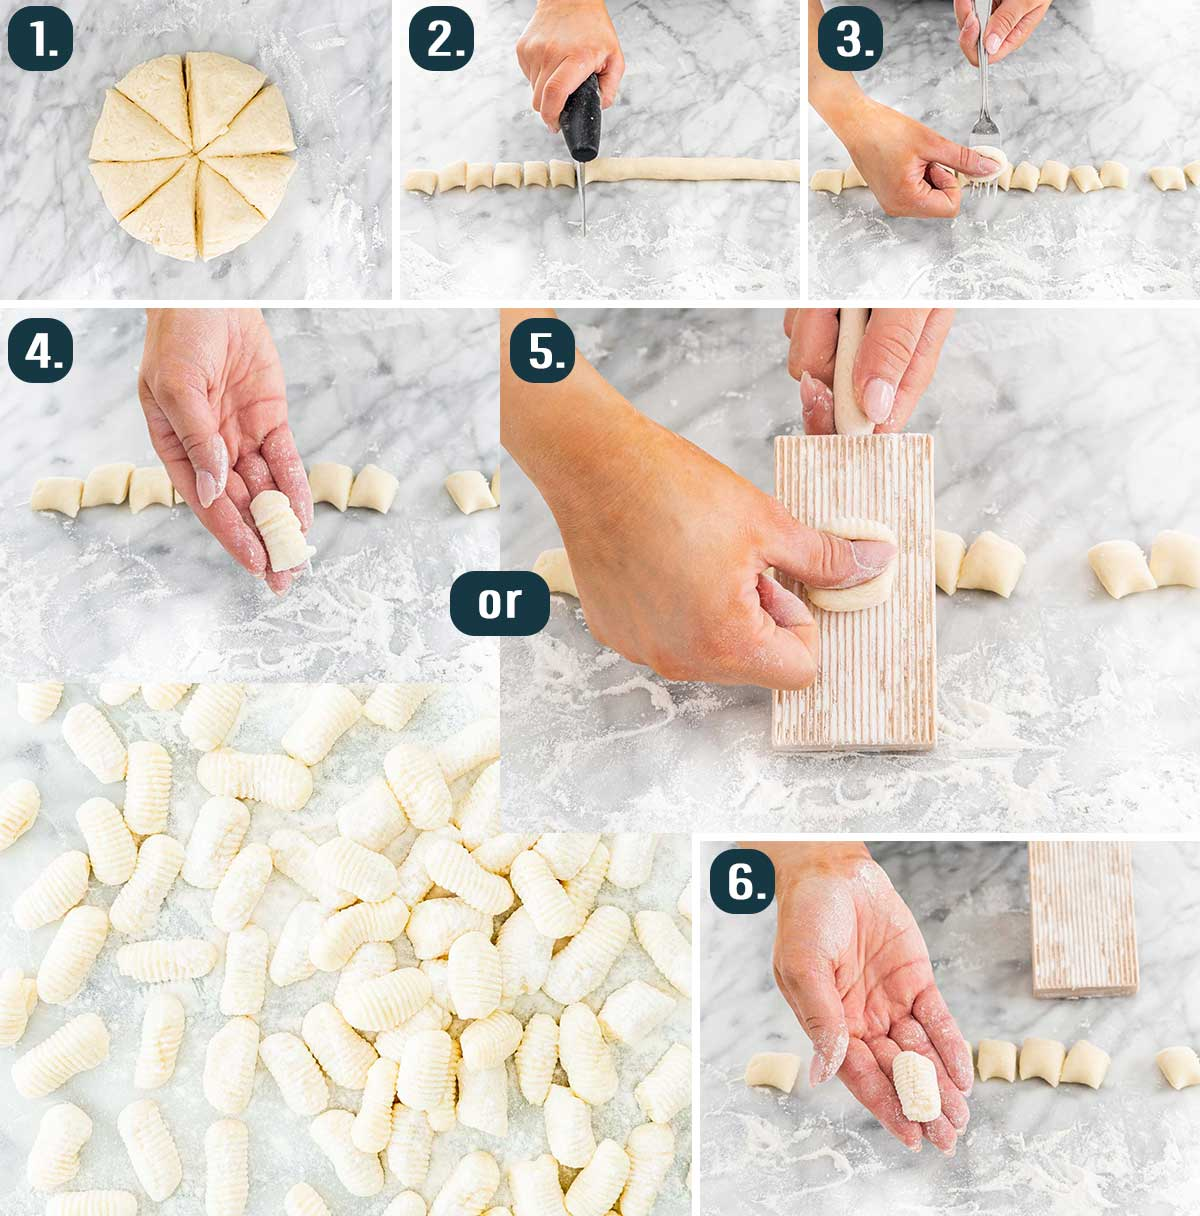 process shots showing how to cut and shape gnocchi